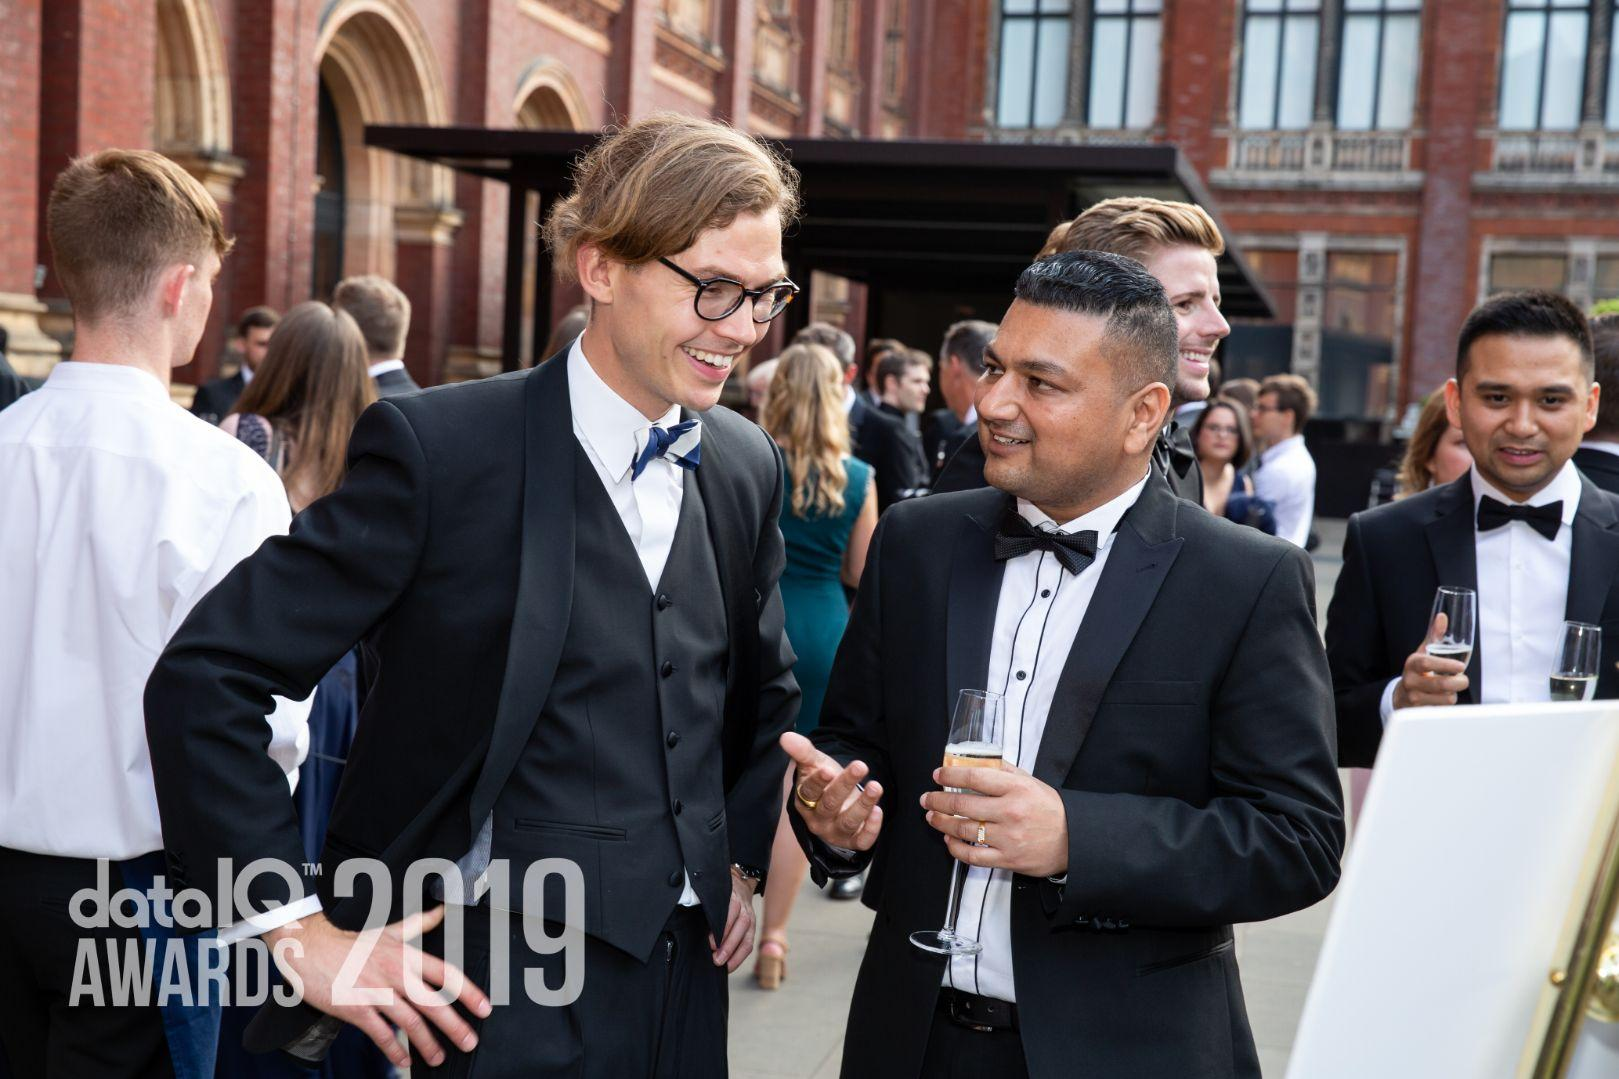 Awards 2019 Image 148